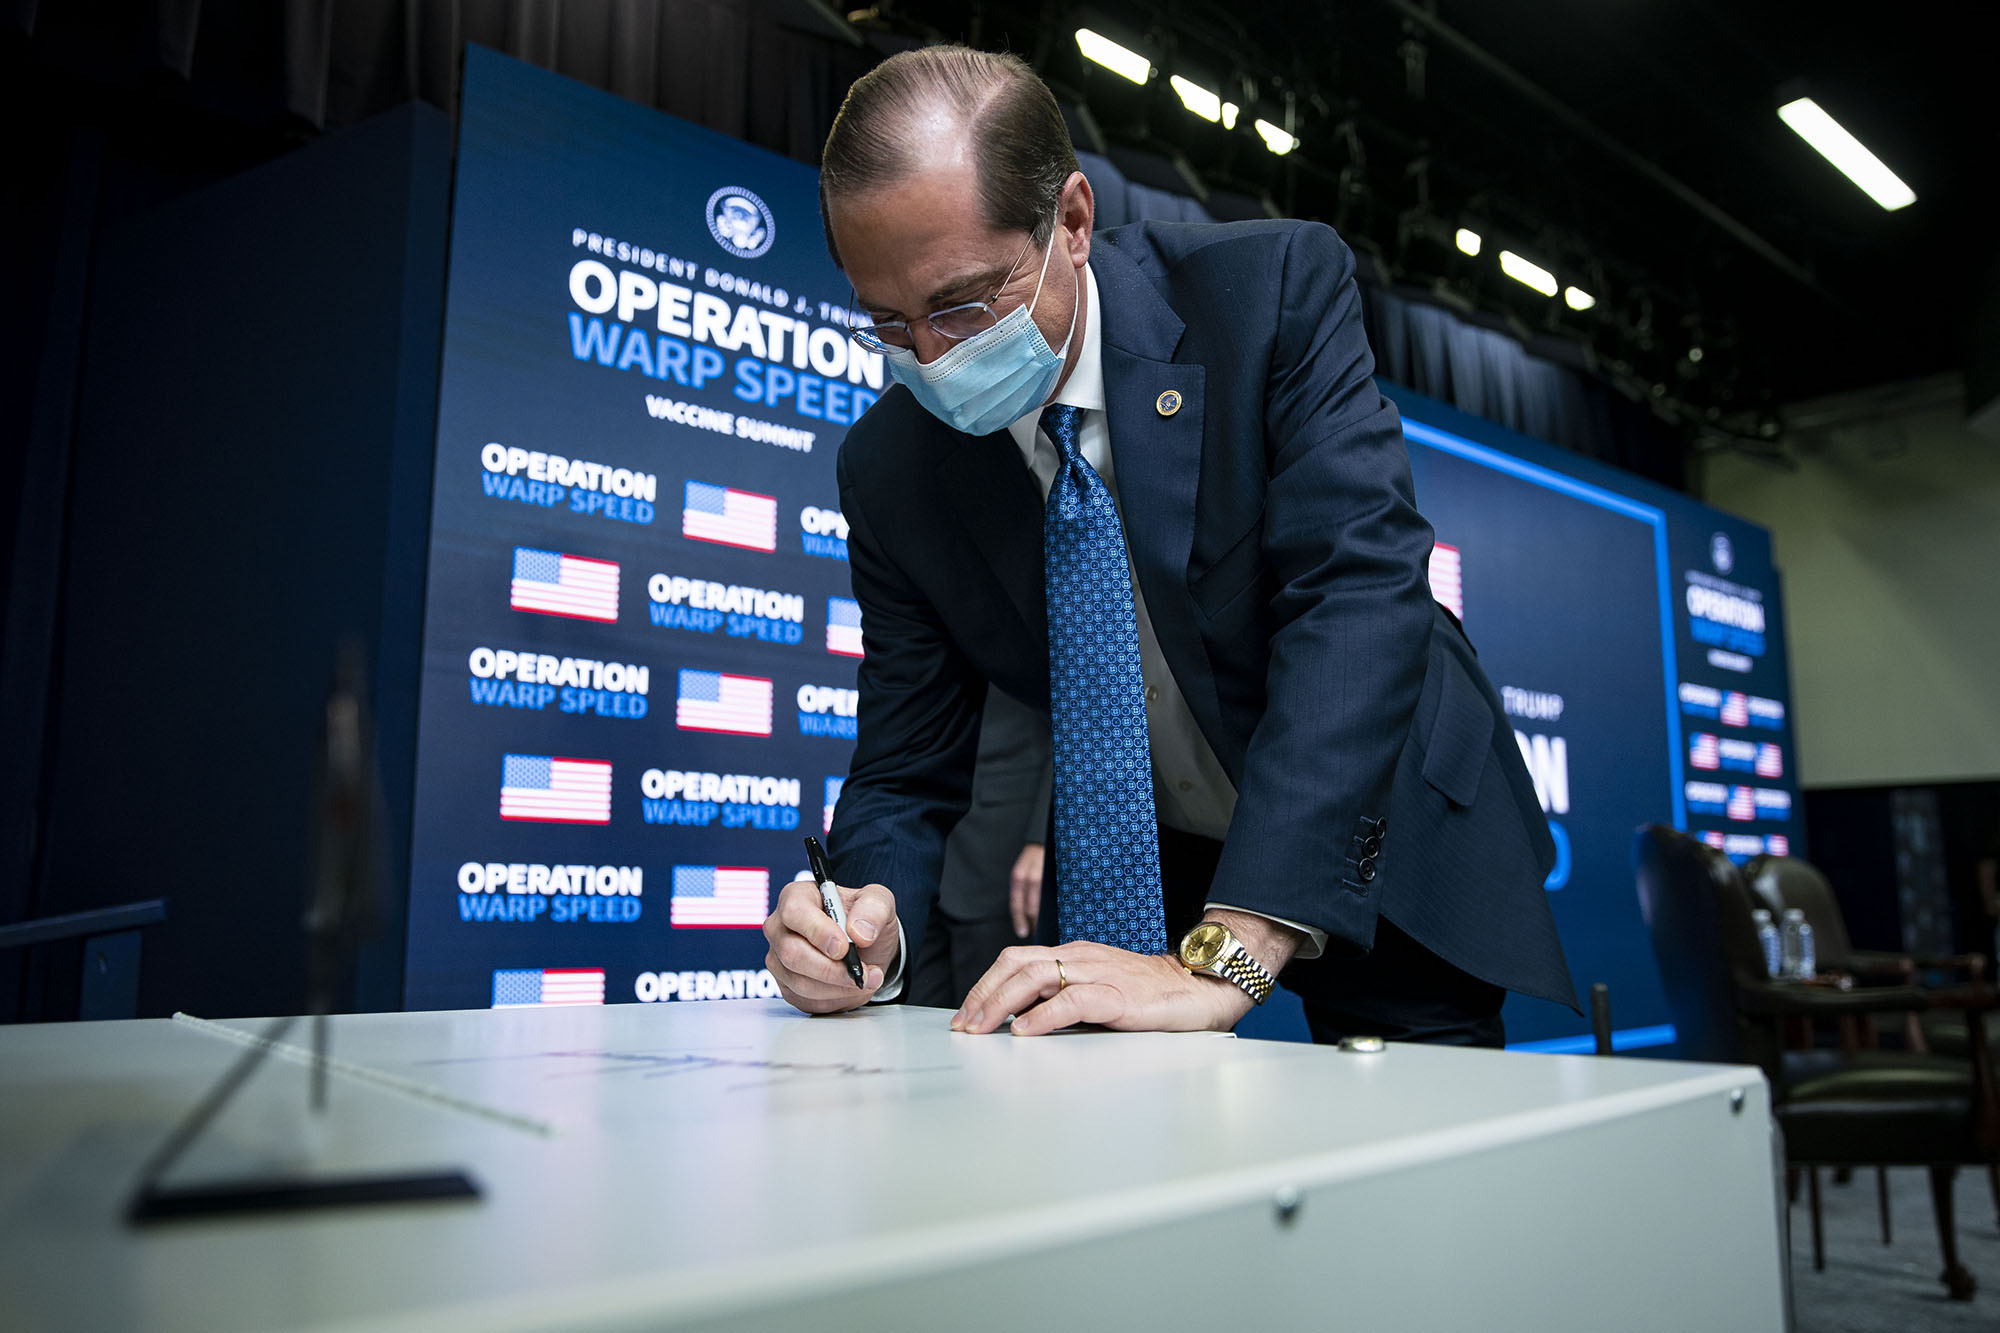 Alex Azar, secretary of Health and Human Services (HHS), signs a Thermo Fisher Scientific Inc. -80C Benchtop Freezer during an Operation Warp Speed vaccine summit at the White House in Washington, D.C., on Tuesday, December 8.